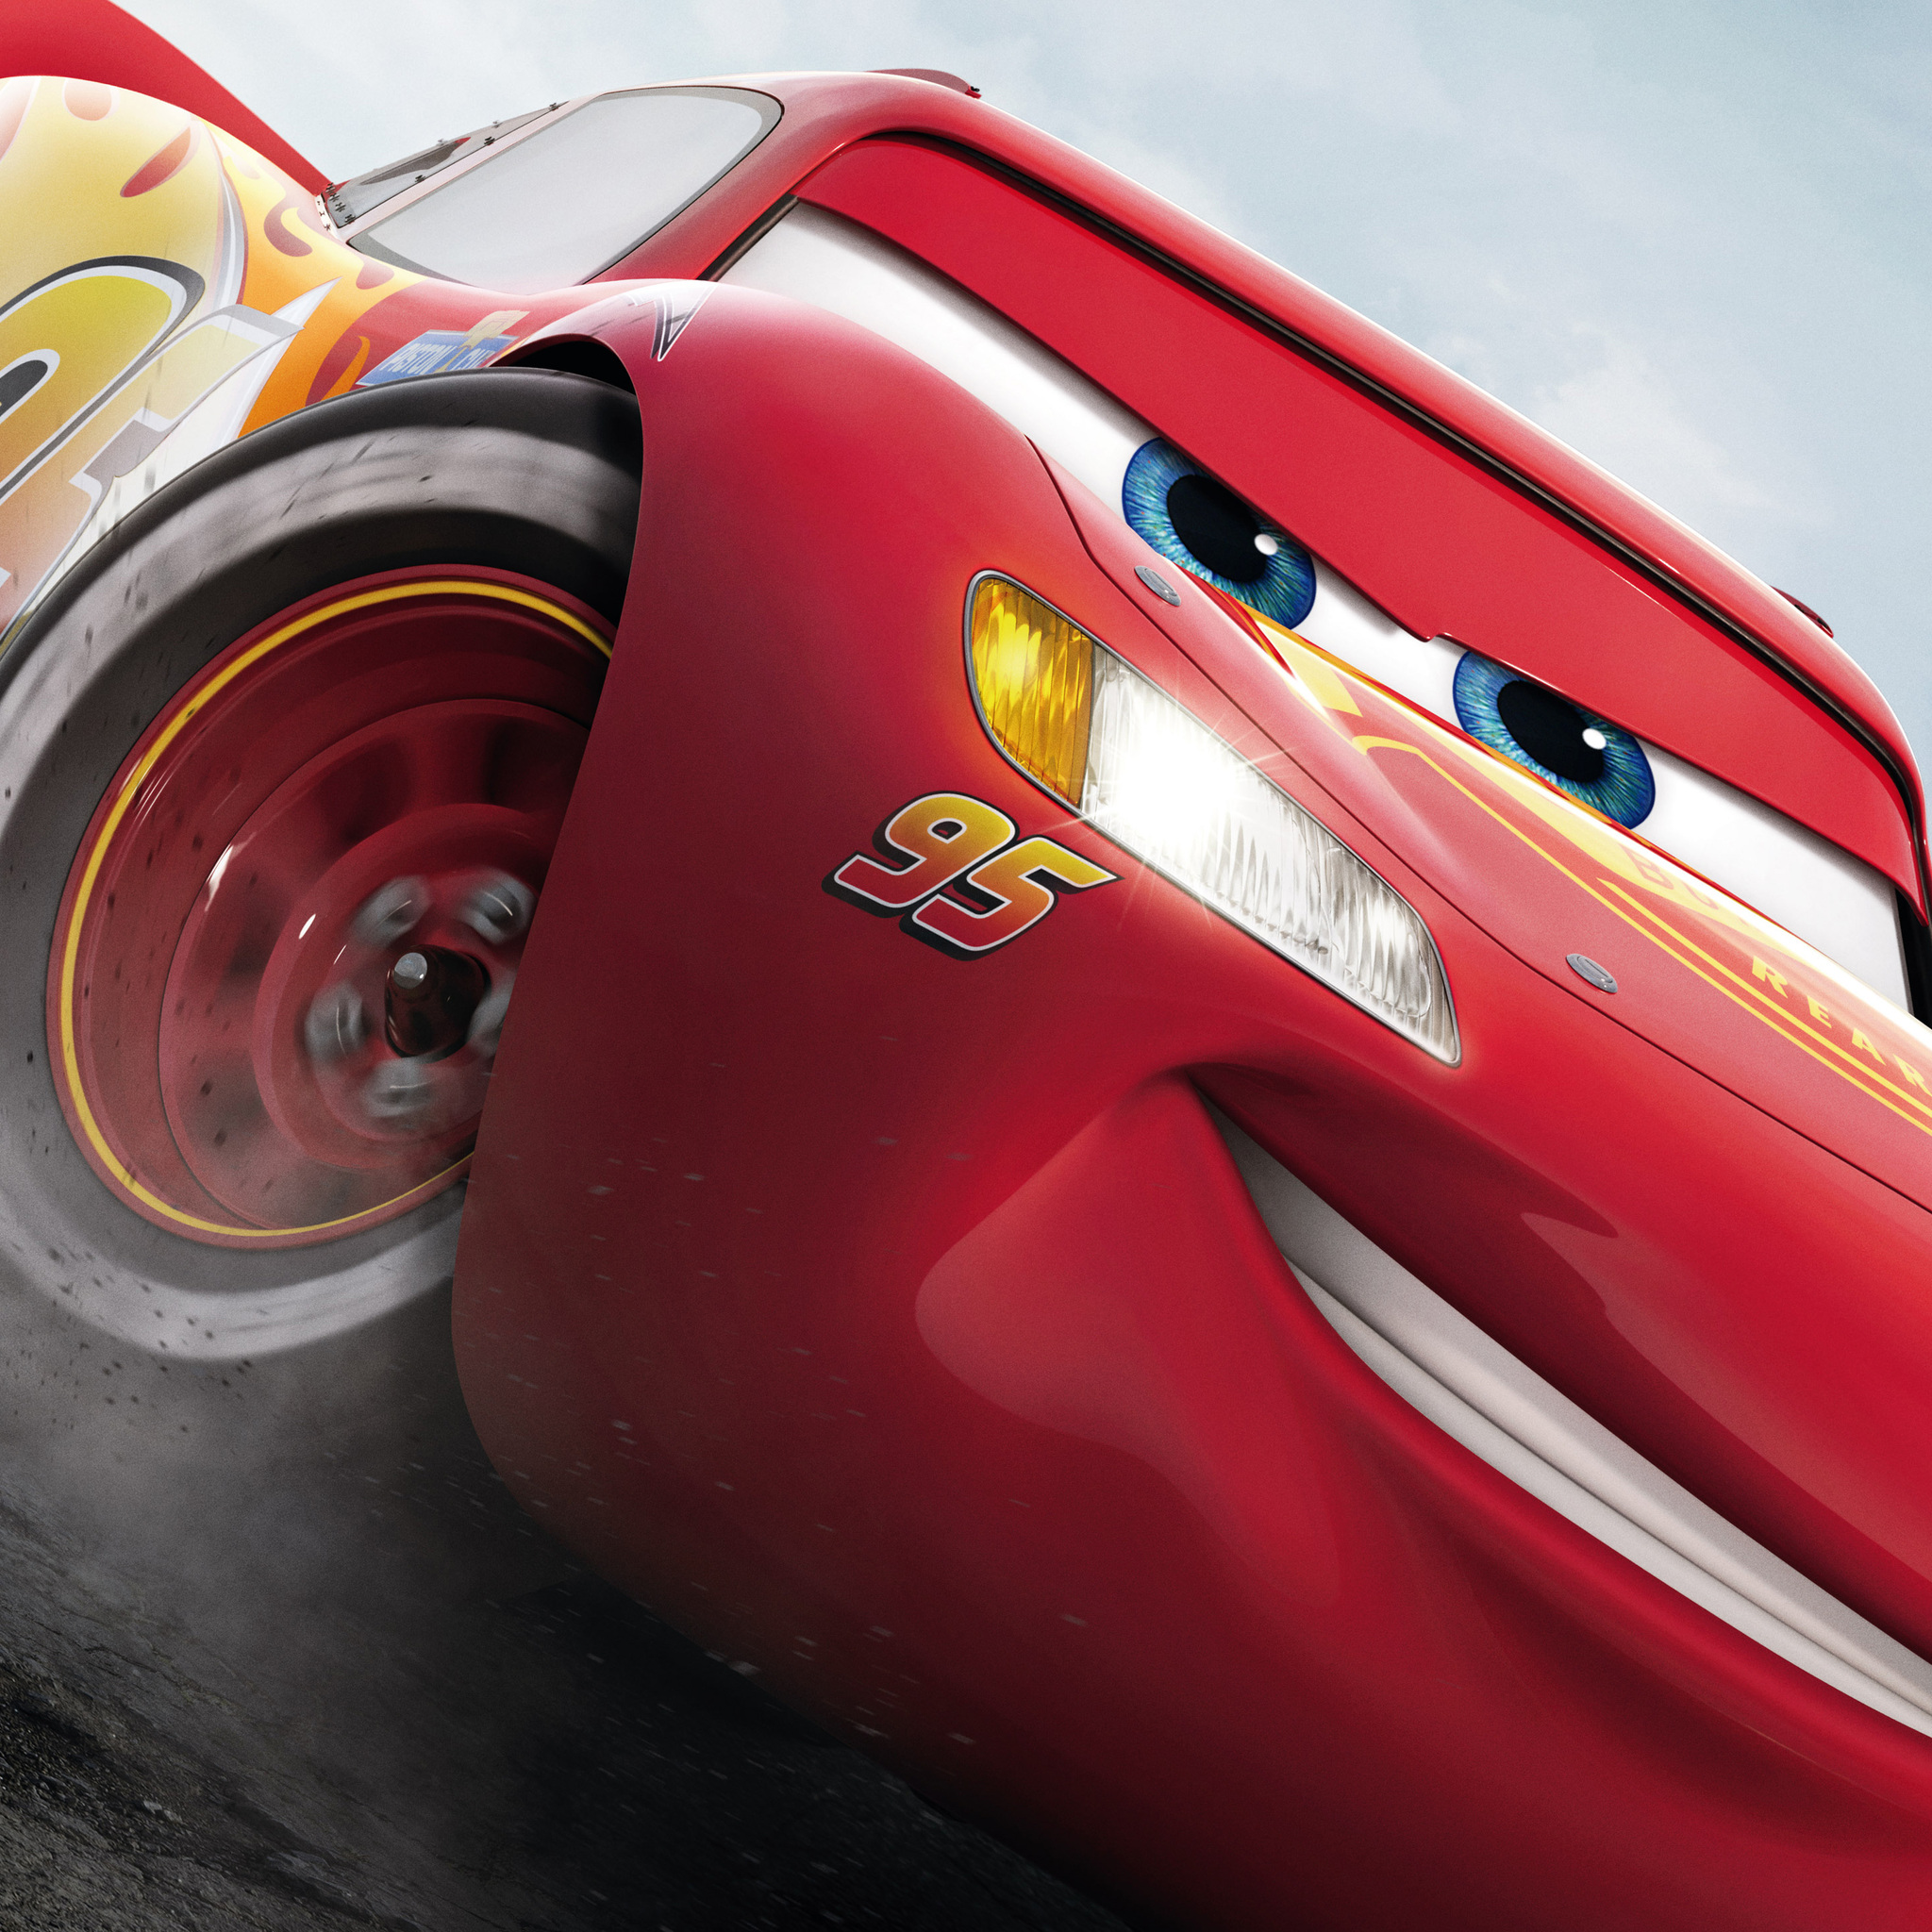 2048x2048 Lightning McQueen Cars 3 Ipad Air HD 4k